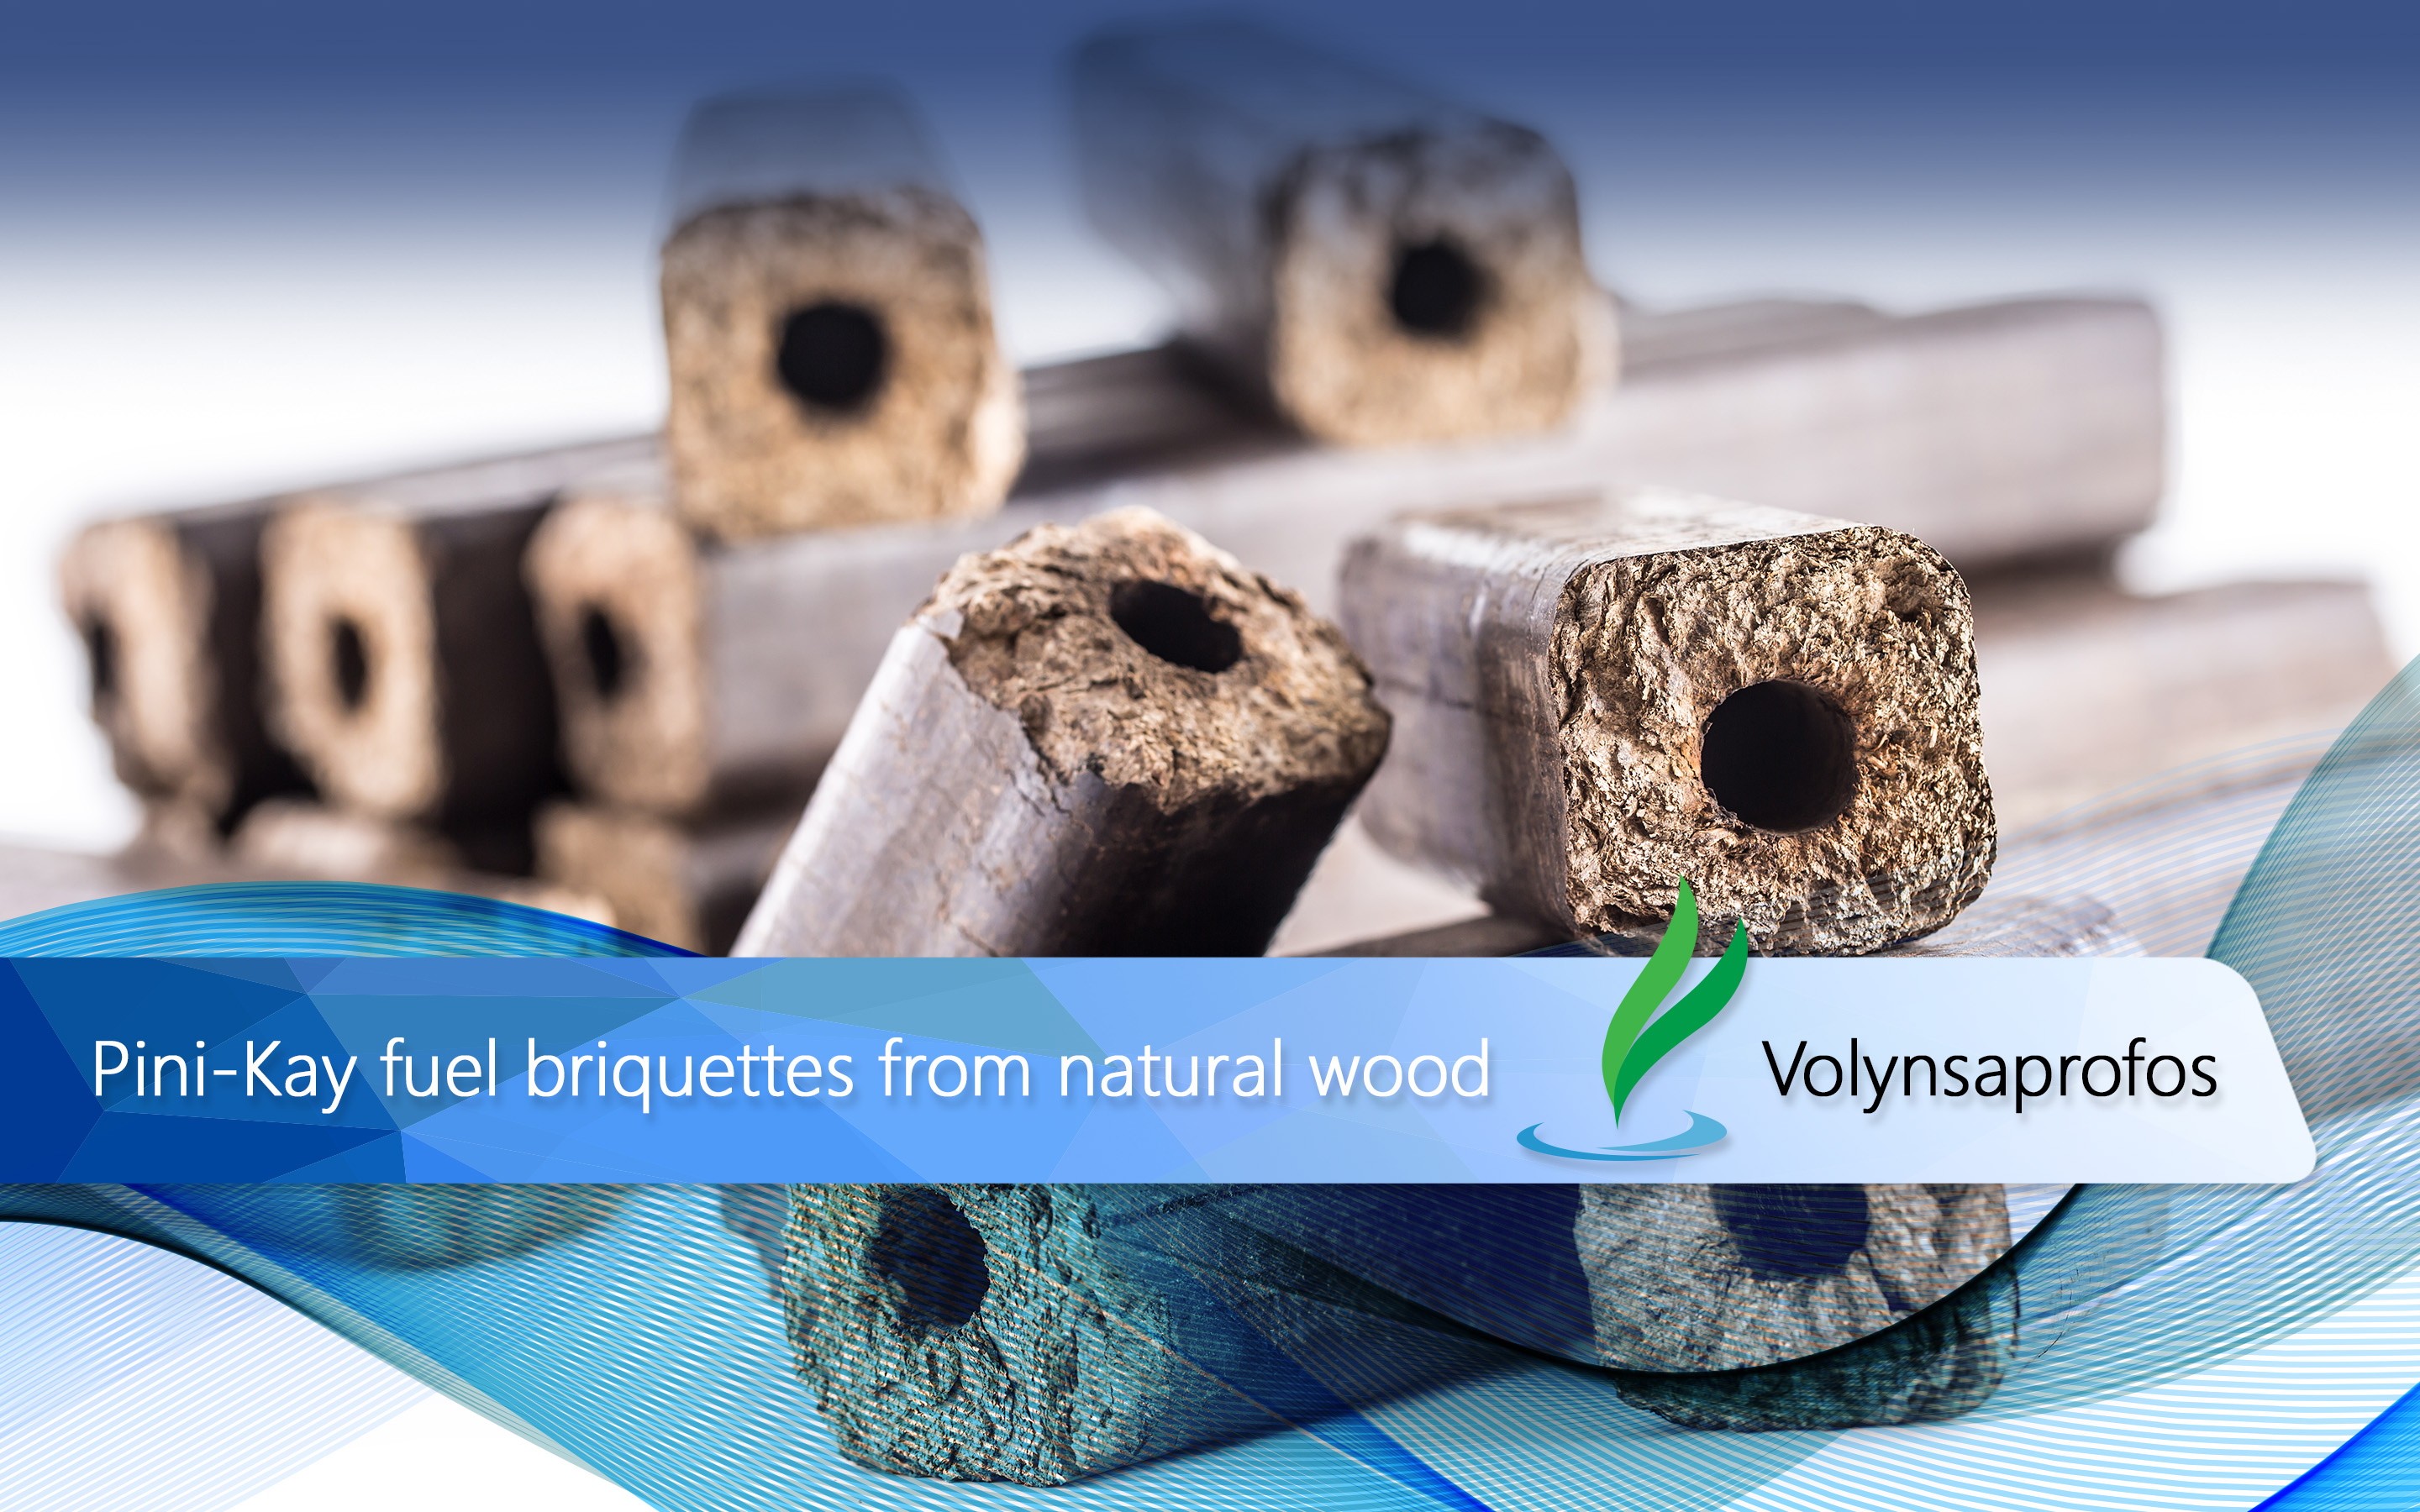 5-Pini-Kay-fuel-briquettes-from-natural-wood